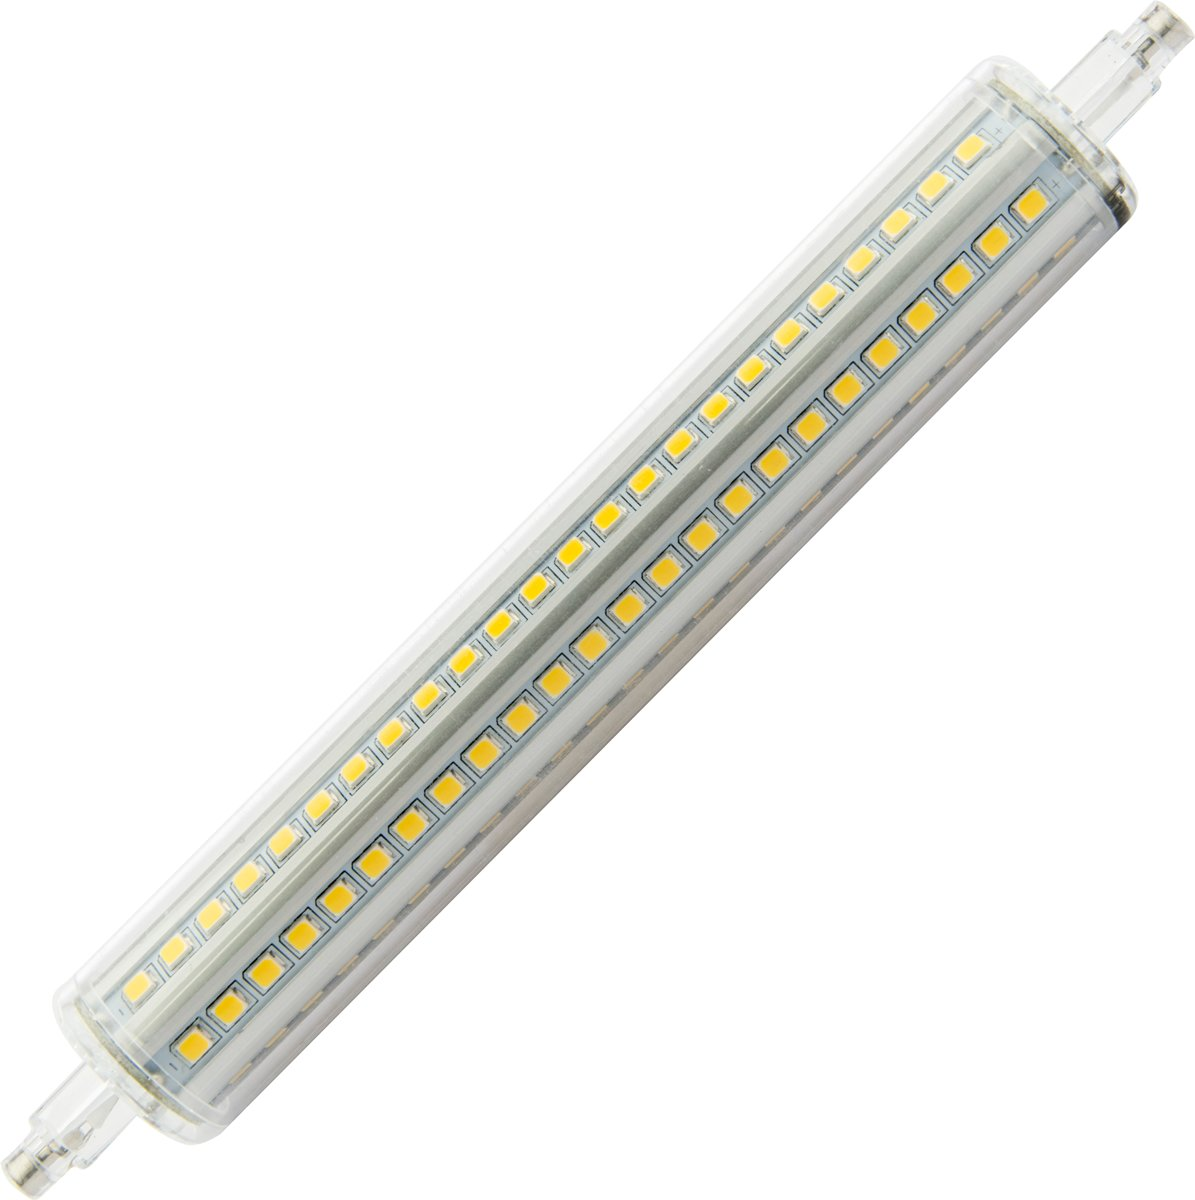 R7s Led Dimbaar Philips Groenovatie Led Lamp R7s Fitting 15w 25x190 Mm 360º Dimbaar Warm Wit